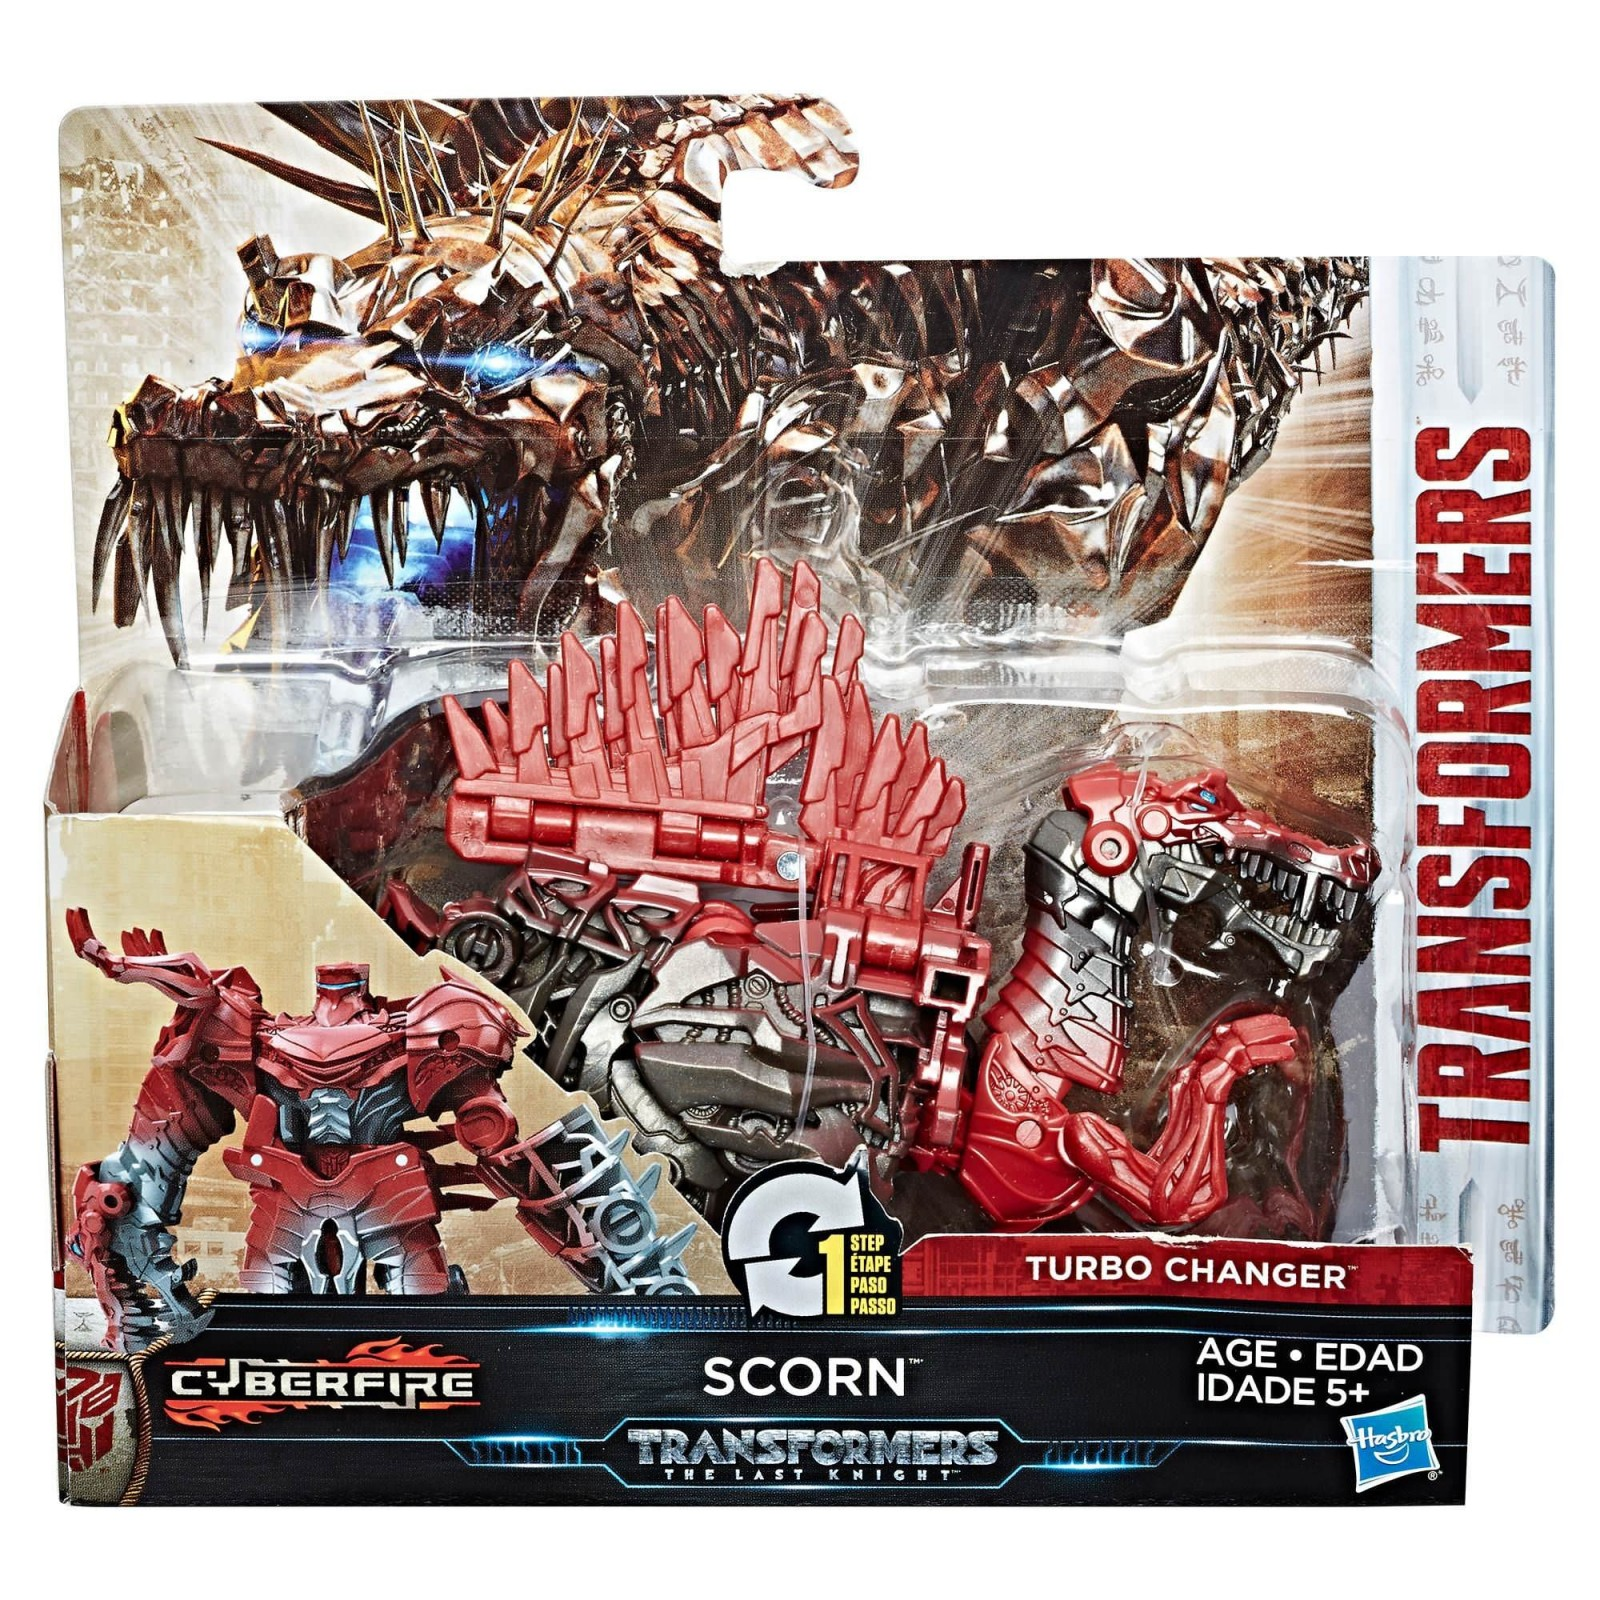 Transformers News: New Official Image for One Step Scorn and Other Turbo Changers from Transformers: The Last Knight